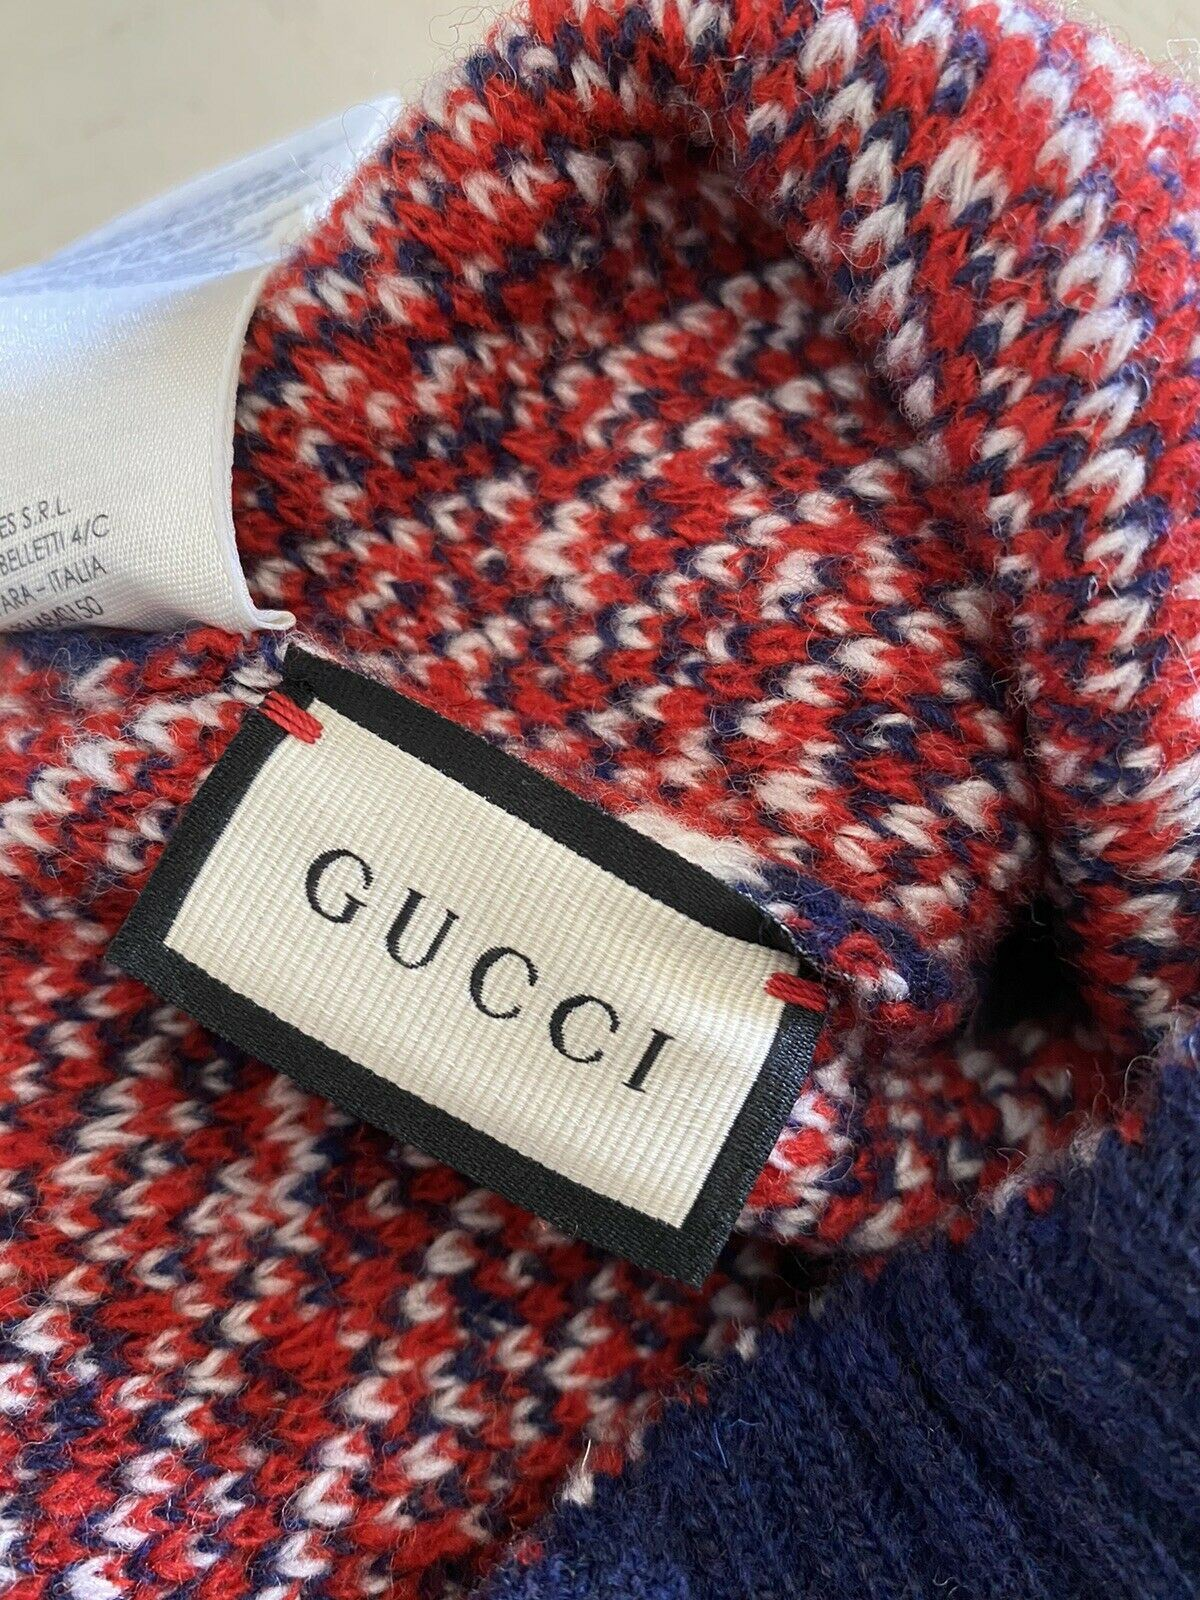 NWT Gucci Mens GG Monogram Wool Beanie Hat Red/Blue Size M Italy